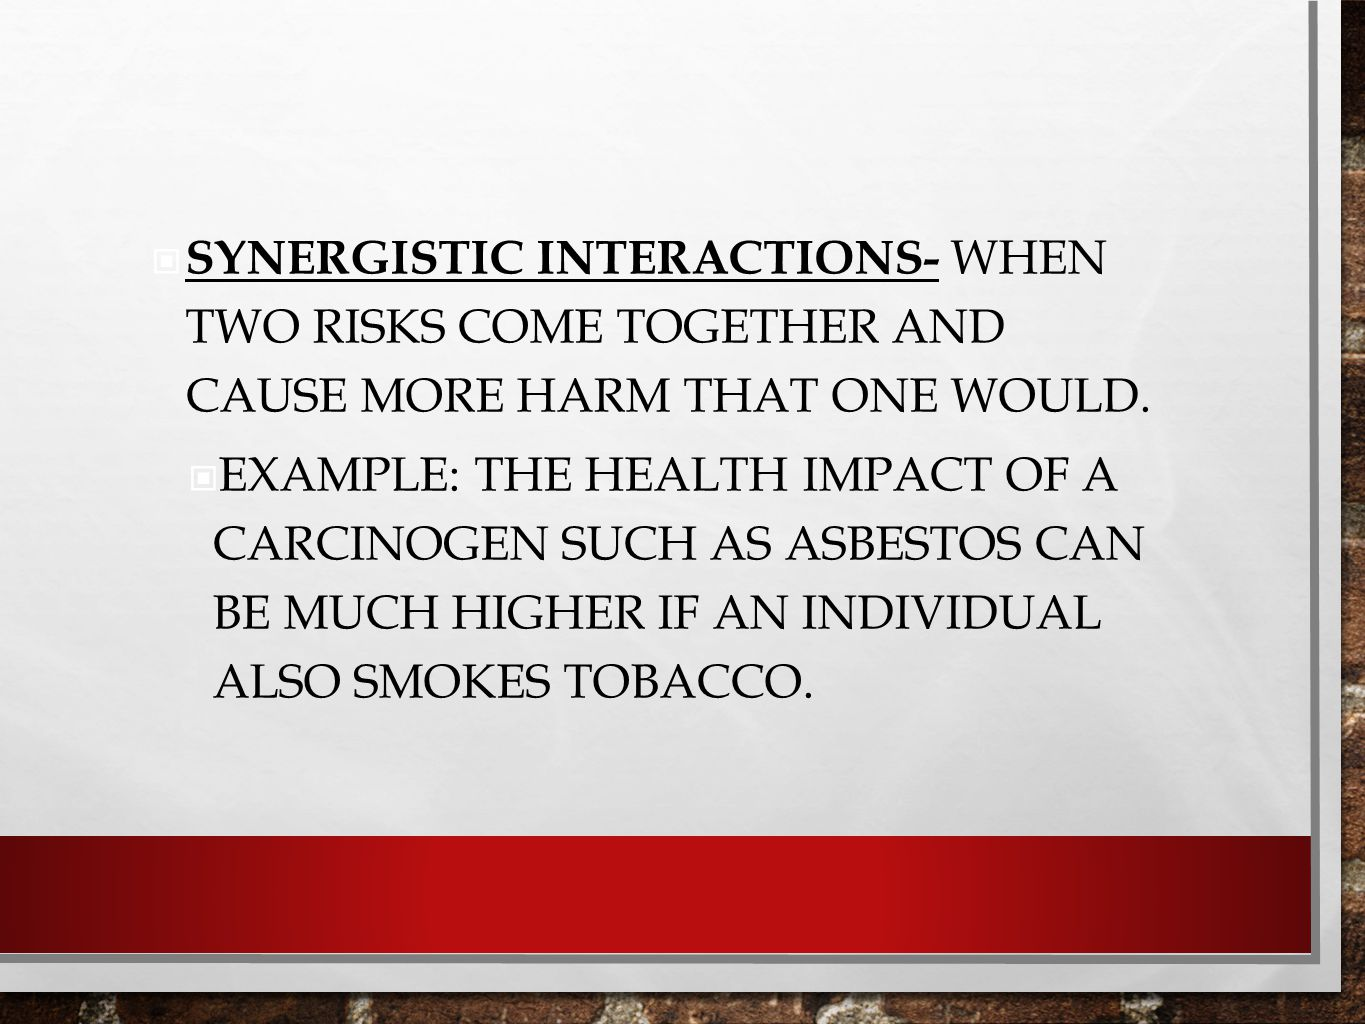 Synergistic interactions- when two risks come together and cause more harm that one would.